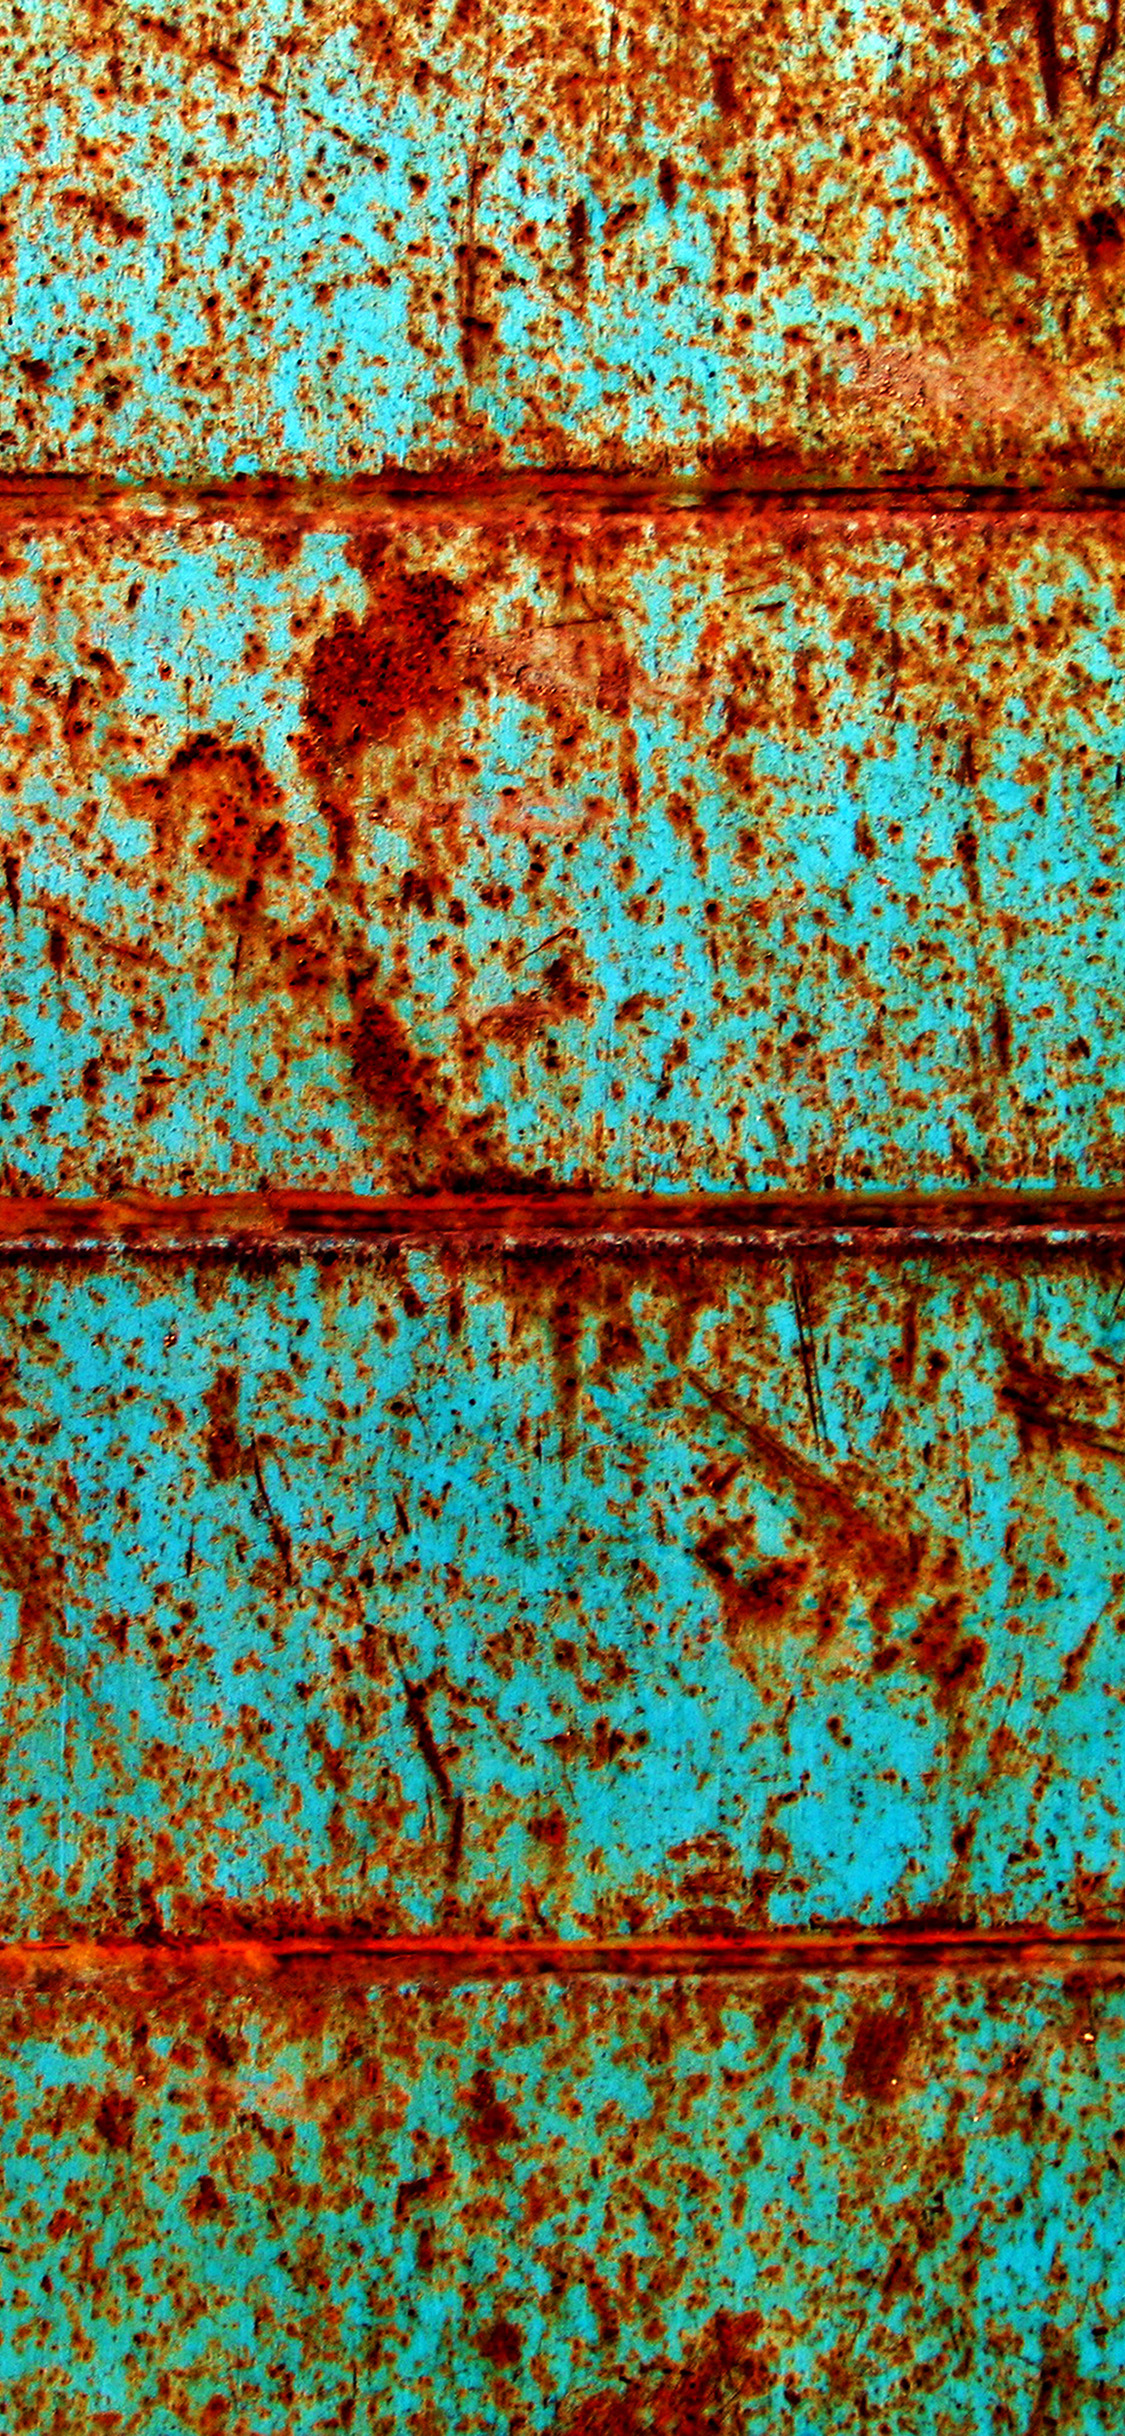 iPhonexpapers.com-Apple-iPhone-wallpaper-wb29-texture-old-trash-pattern-background